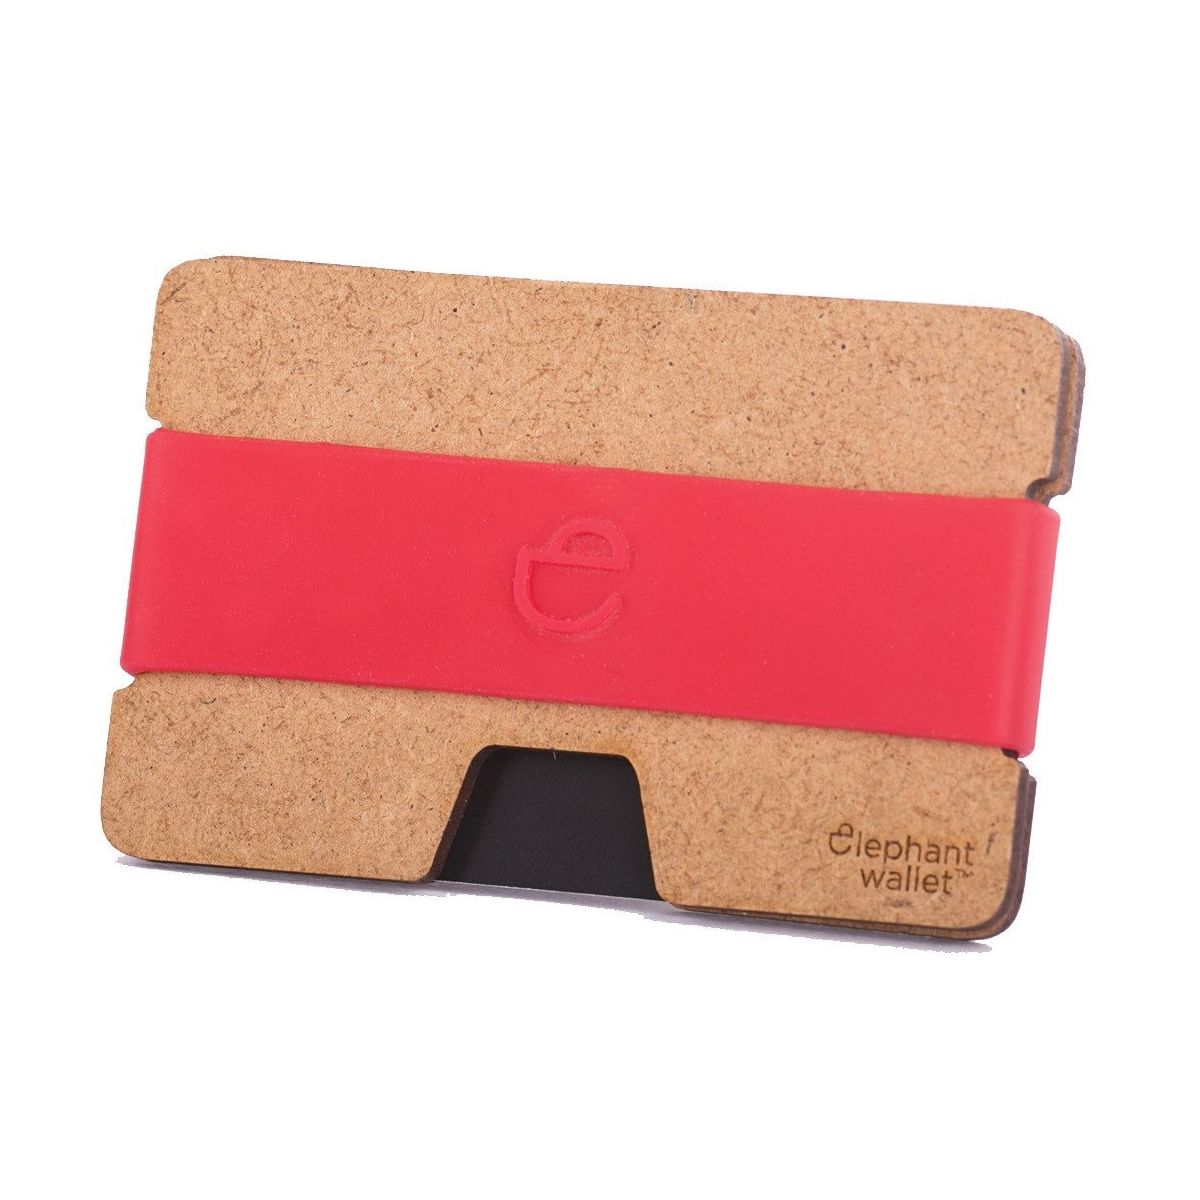 elephant Minimalist Wood Wallet - Wood/Red